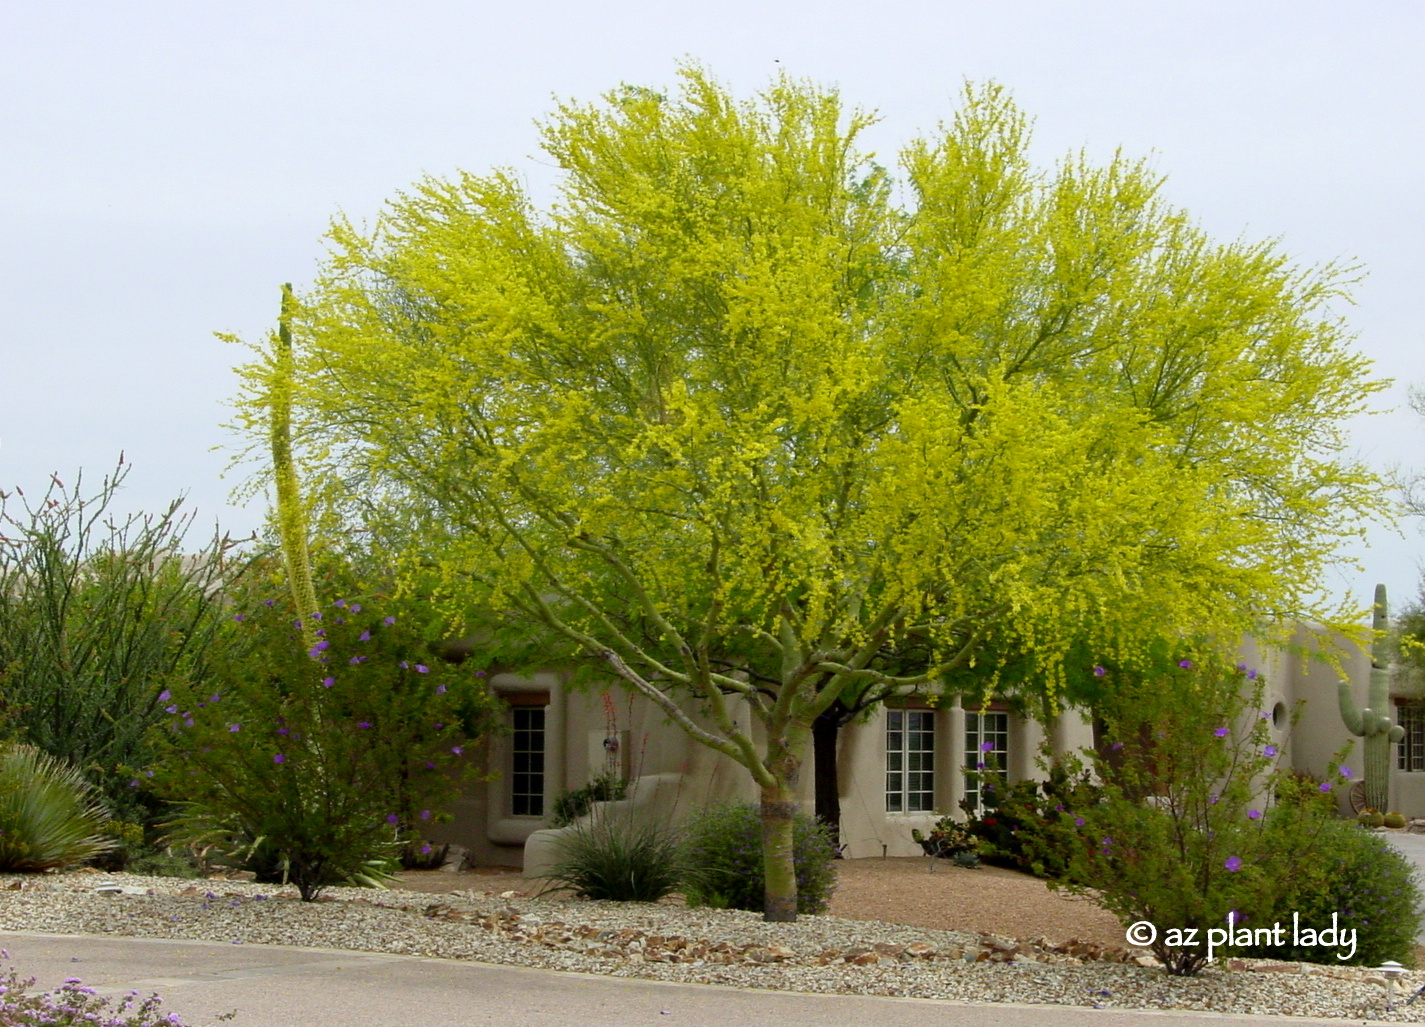 Learn About The Deserts Iconic Tree The Palo Verde